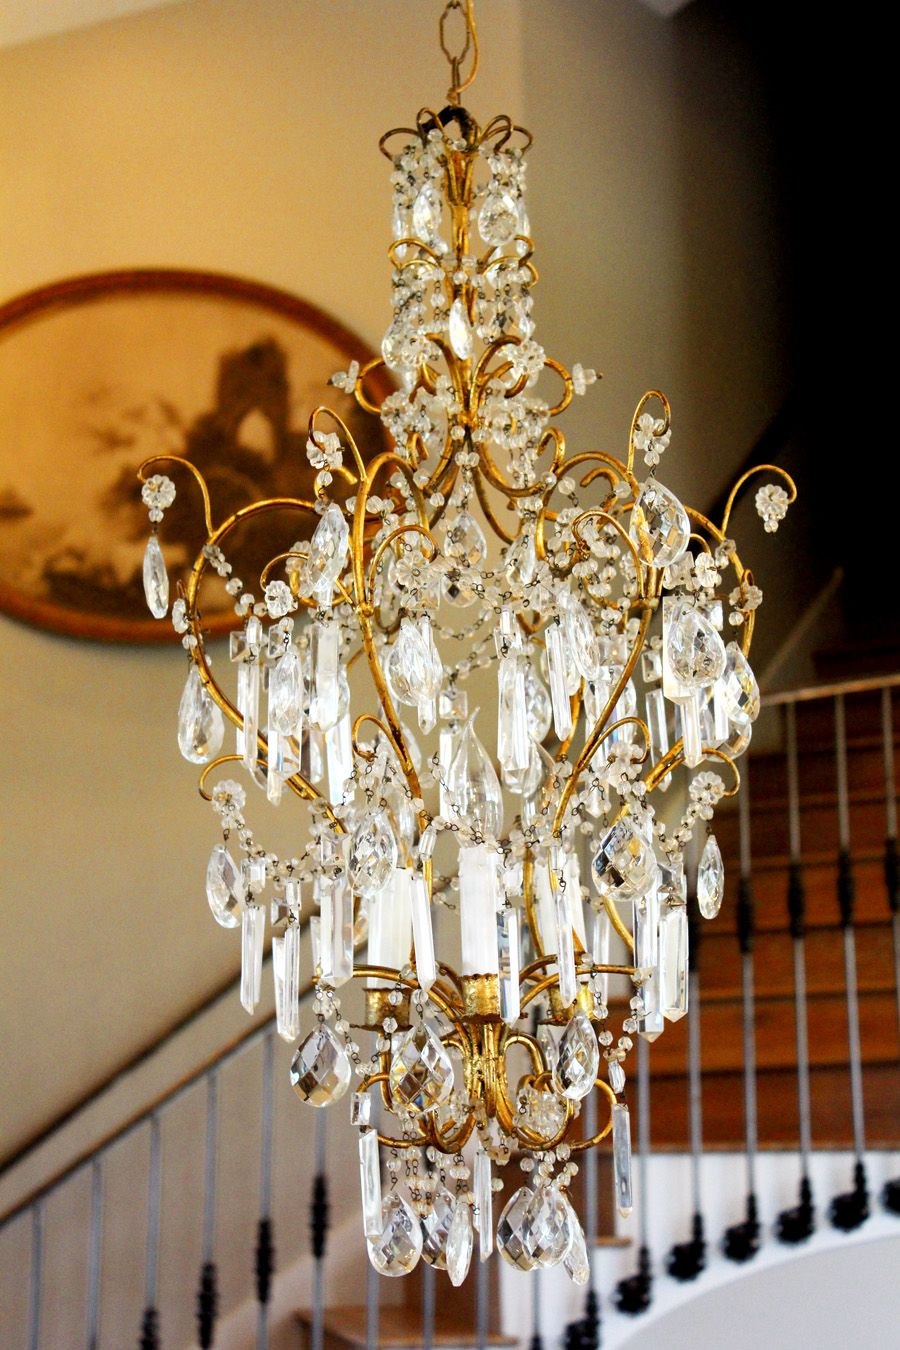 Breathtaking italian beaded antique chandelier breathtaking italian breathtaking italian beaded antique chandelier breathtaking italian beaded antique chandelier this antique chandelier is all original arubaitofo Image collections